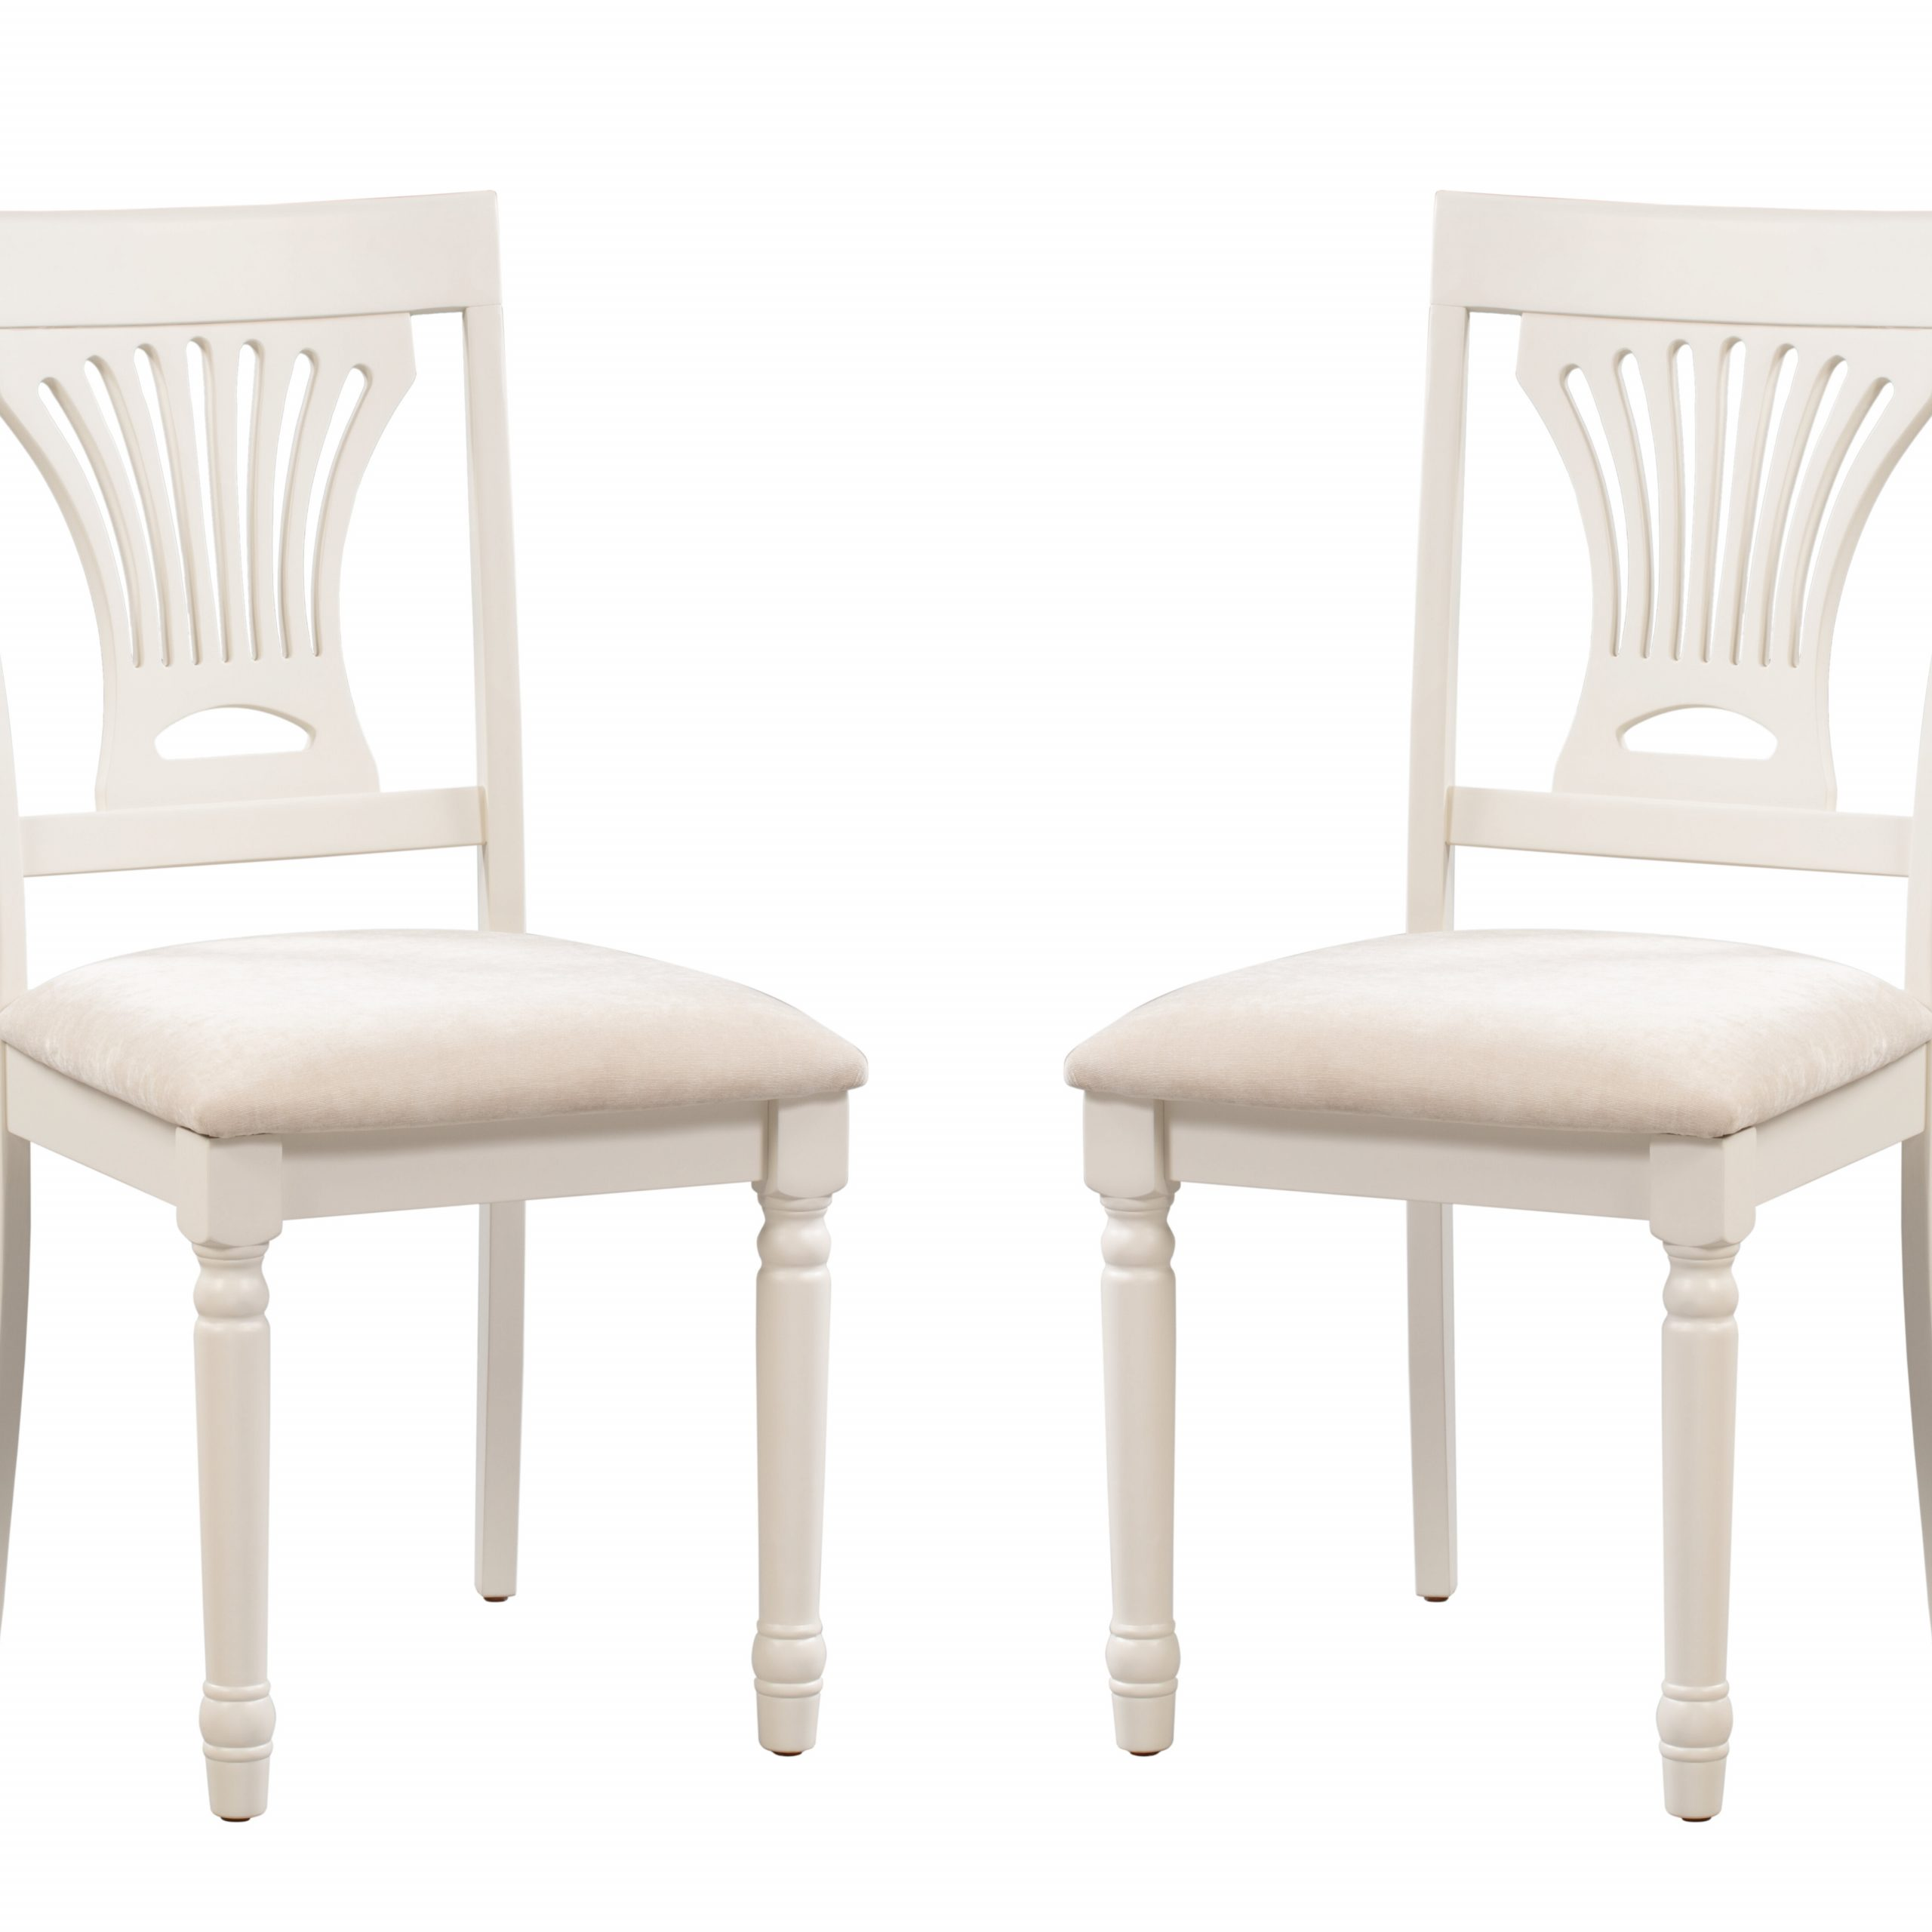 Aaliyah Parsons Chairs For Widely Used Whittaker Upholstered Dining Chair (View 15 of 20)